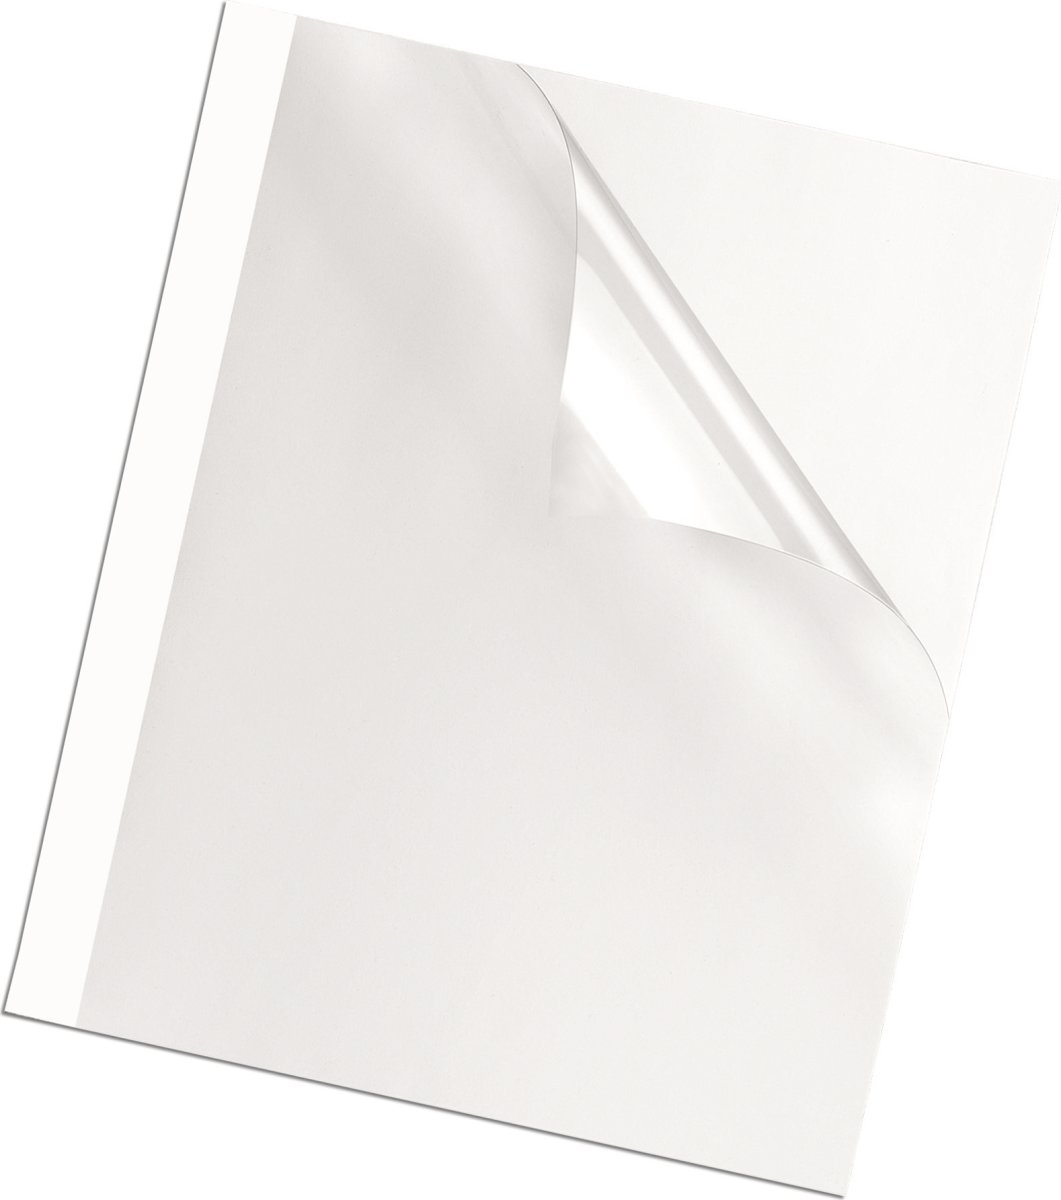 Fellowes standard thermal binding cover 1,5mm hvid